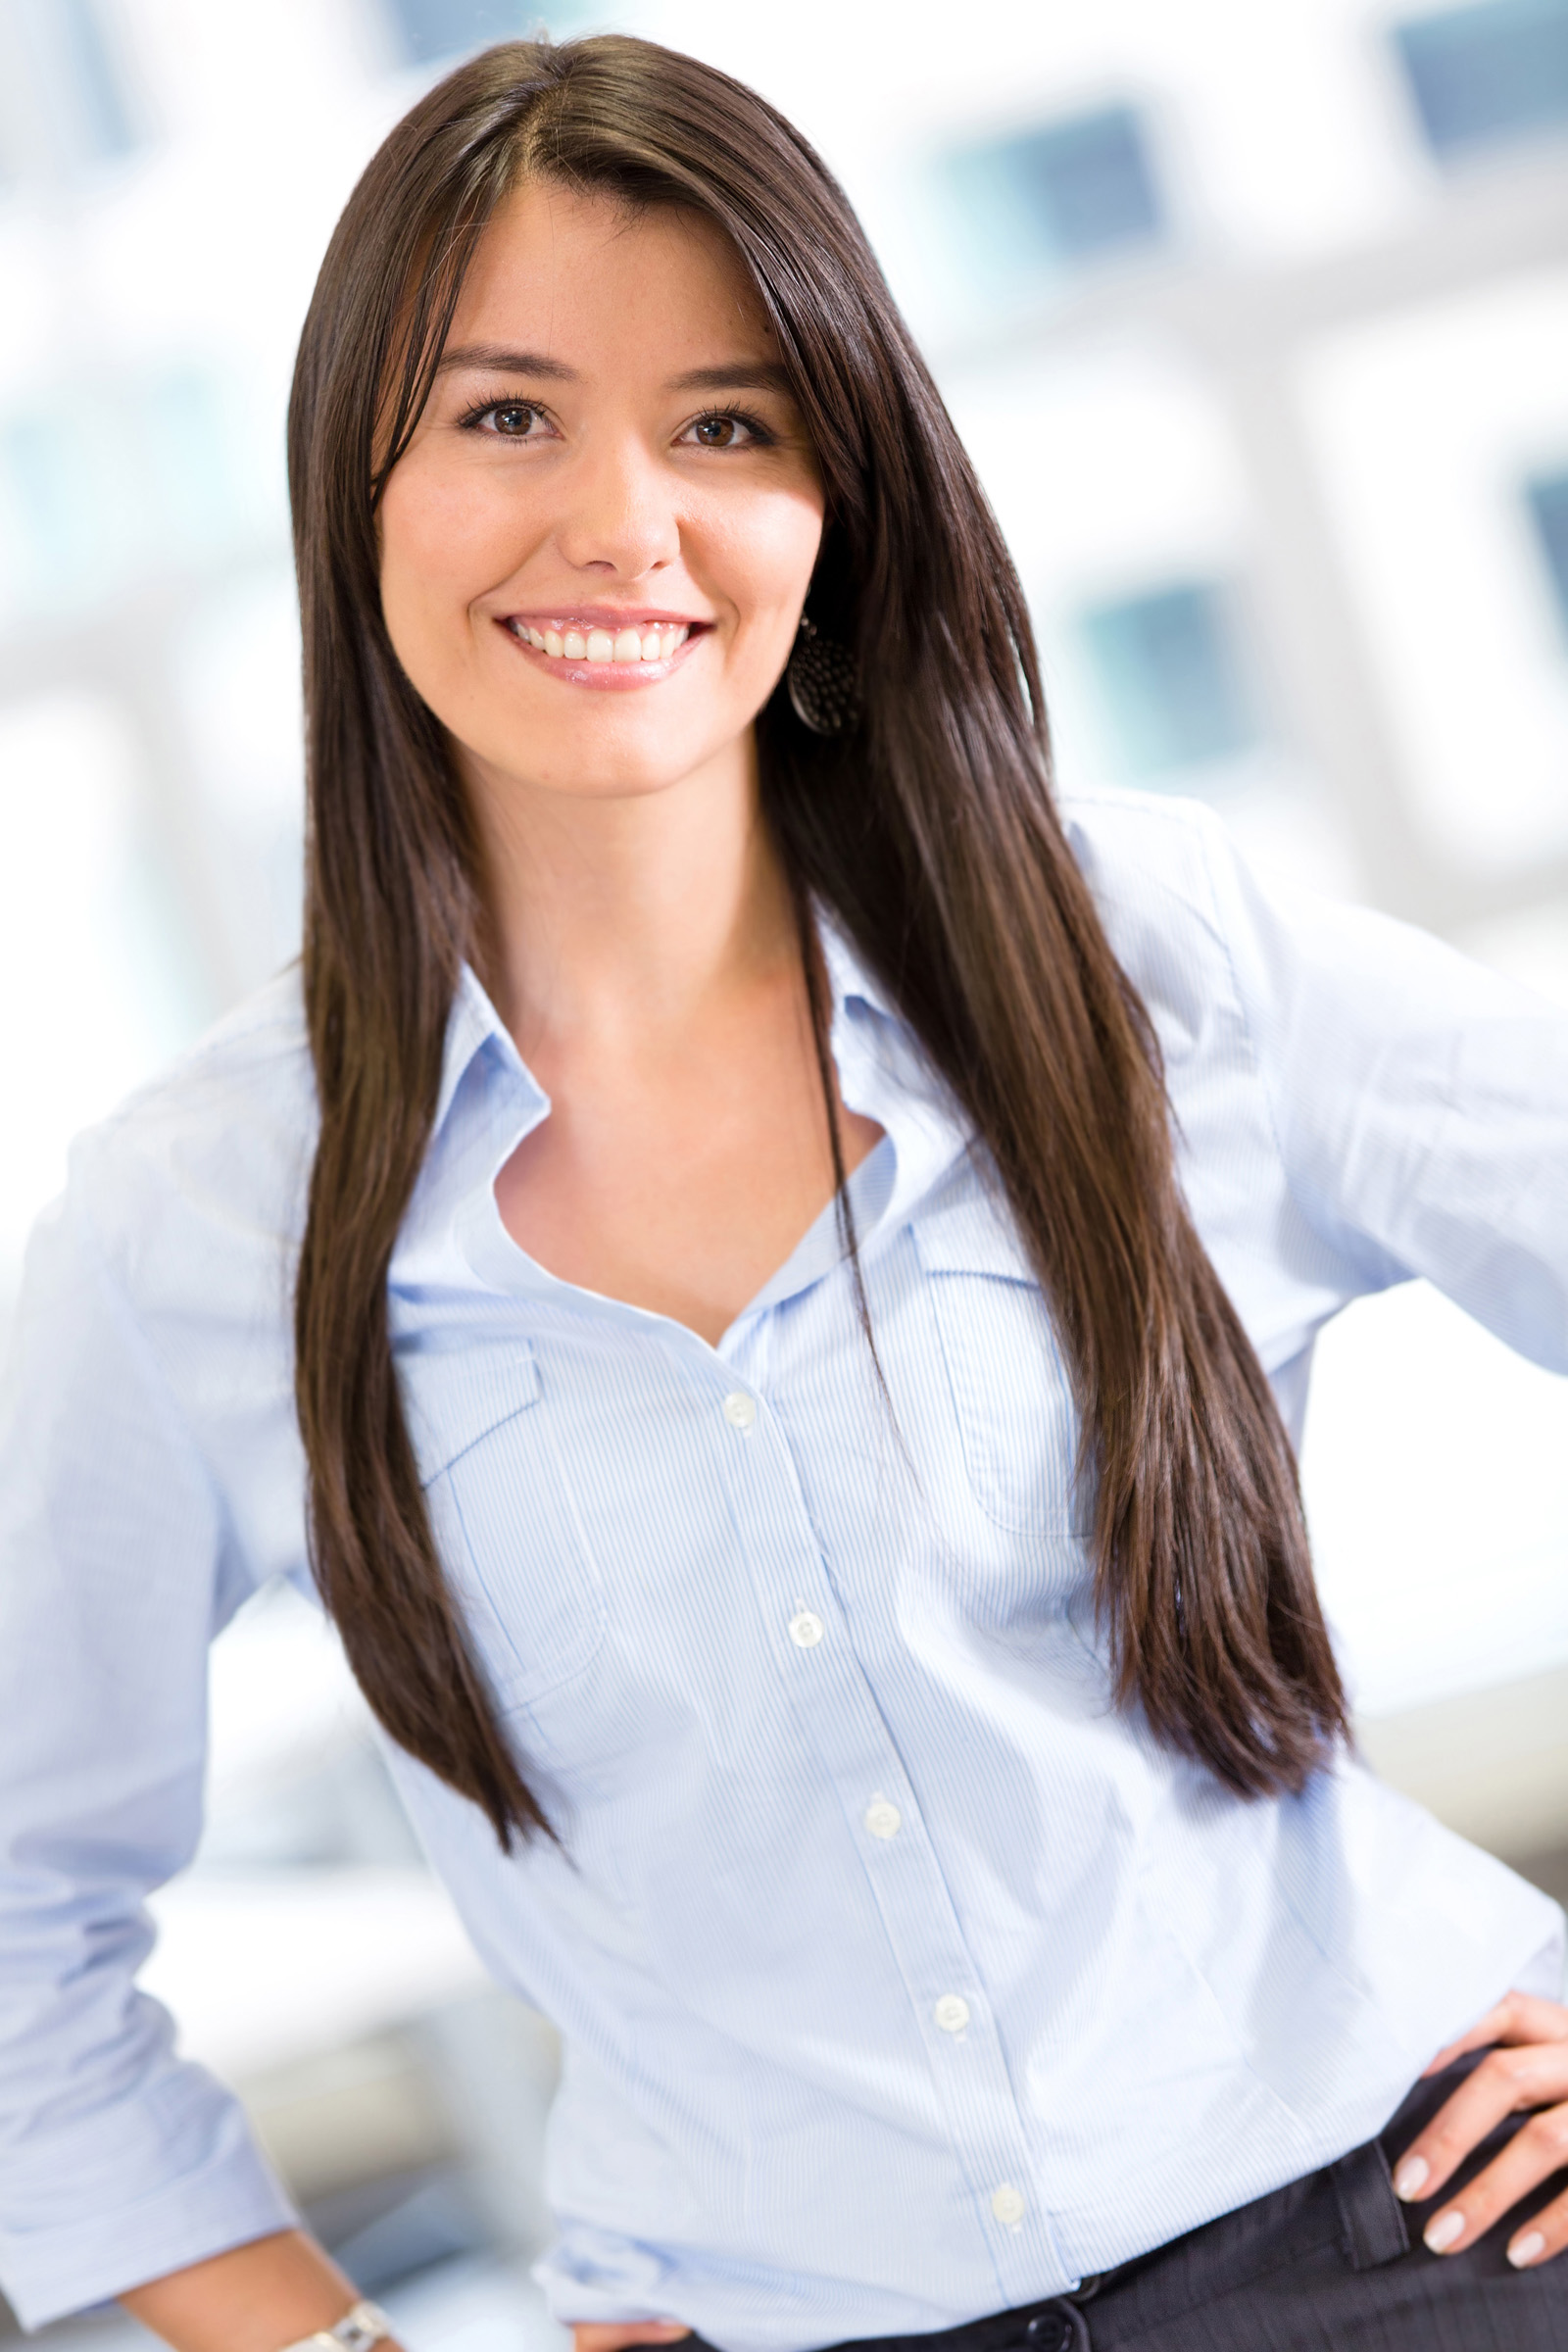 Hair Akimbo gestures in the workplace and girls 51809